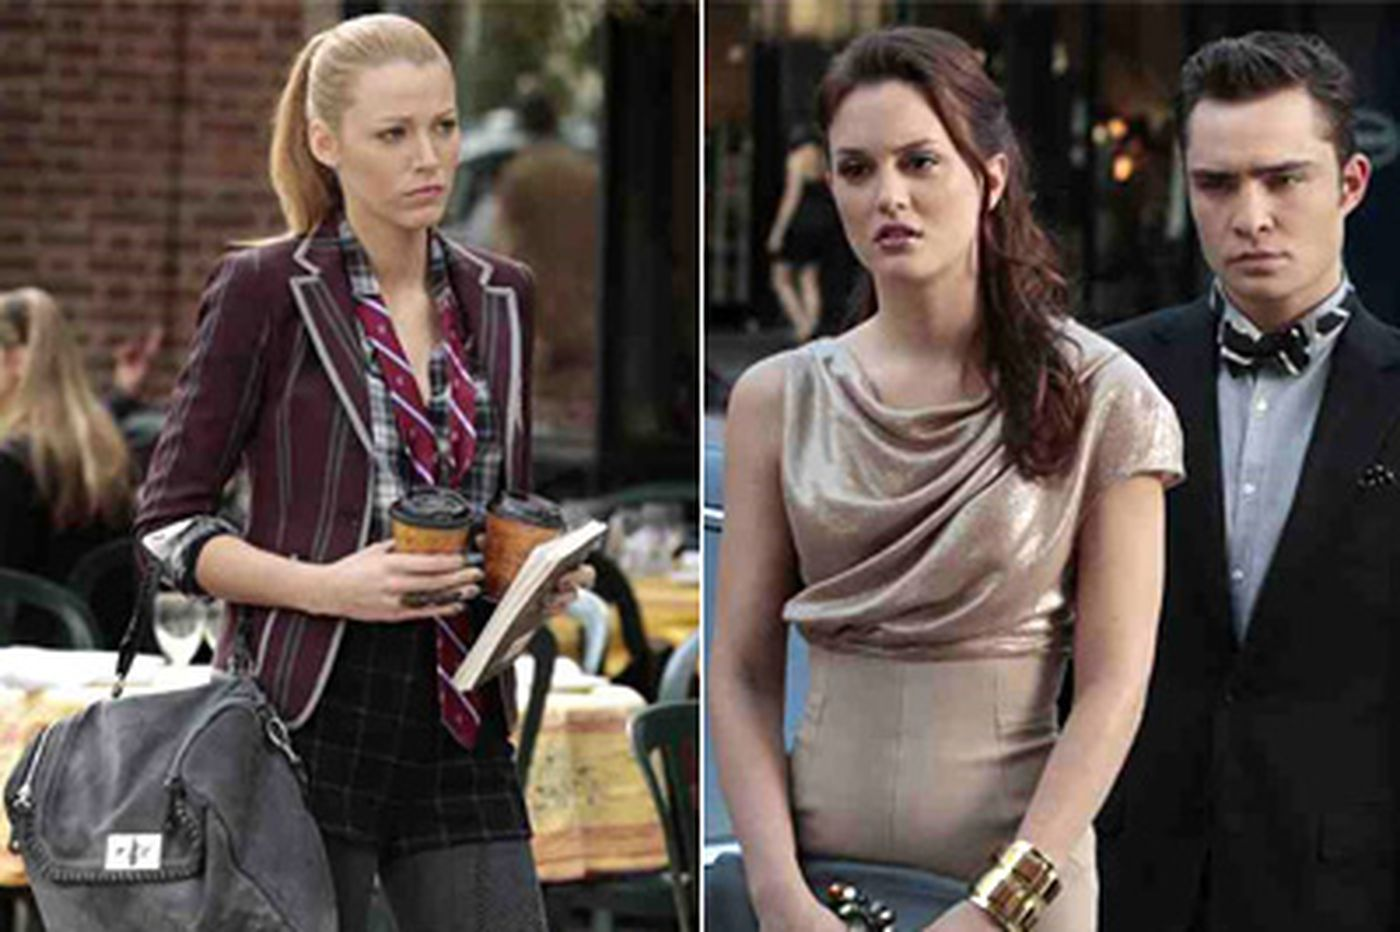 For 'Gossip Girl' fans, the buzz is the clothes